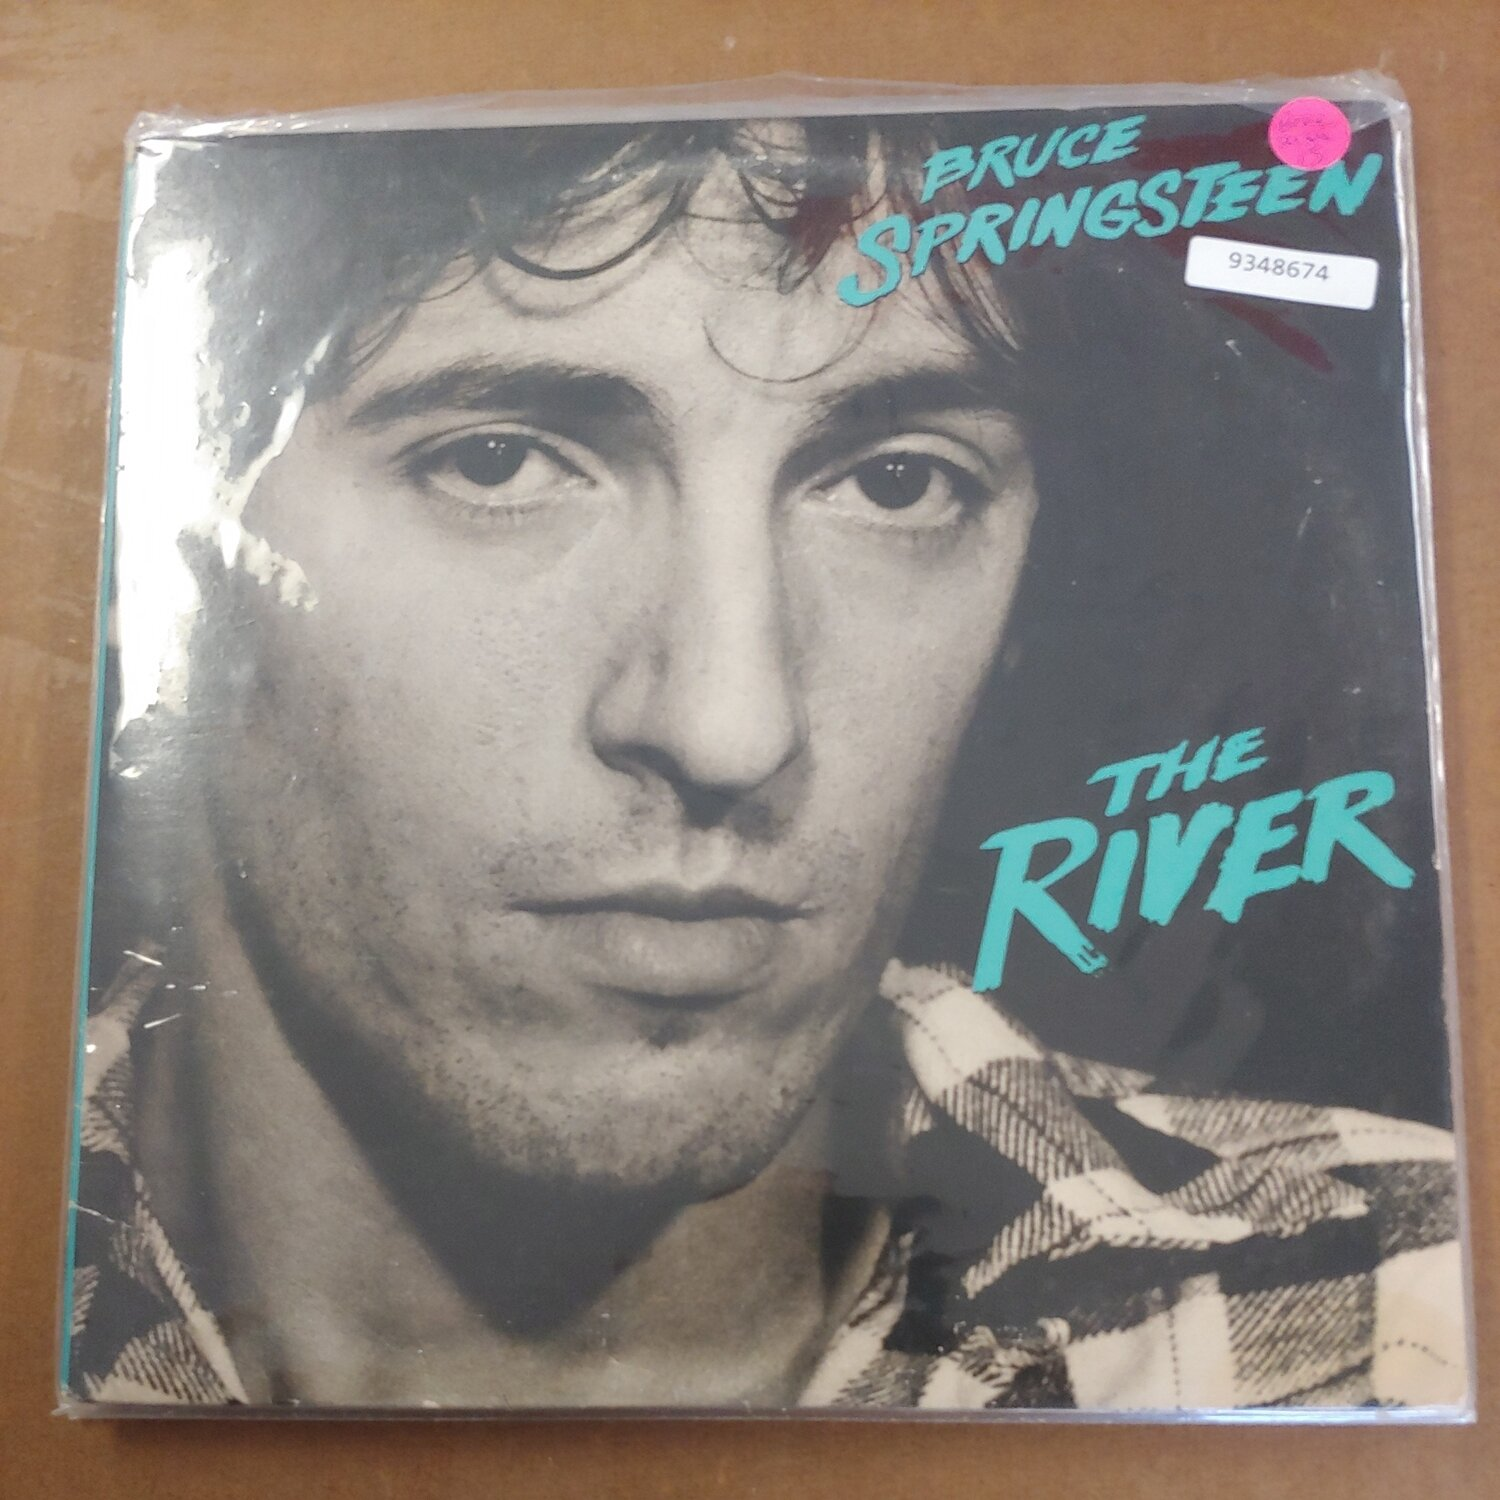 Springsteen, Bruce - The River